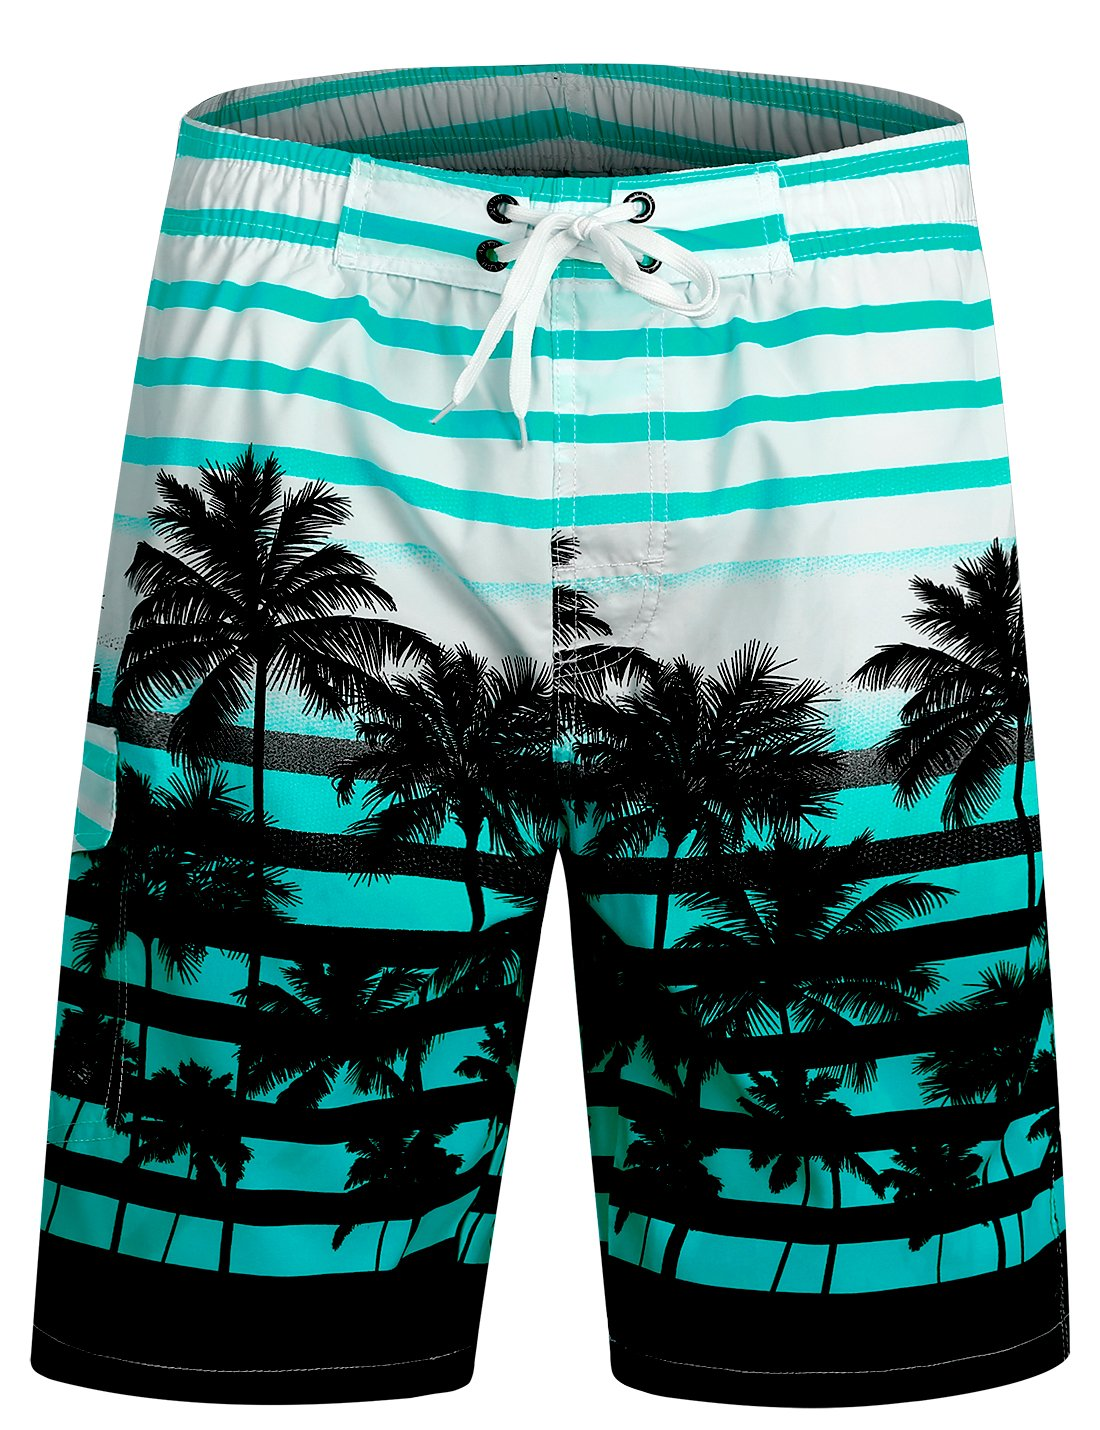 e855b384f5 APTRO Men's Swim Trunks Quick Dry Bathing Suits Beach Holiday Party Board  Shorts product image